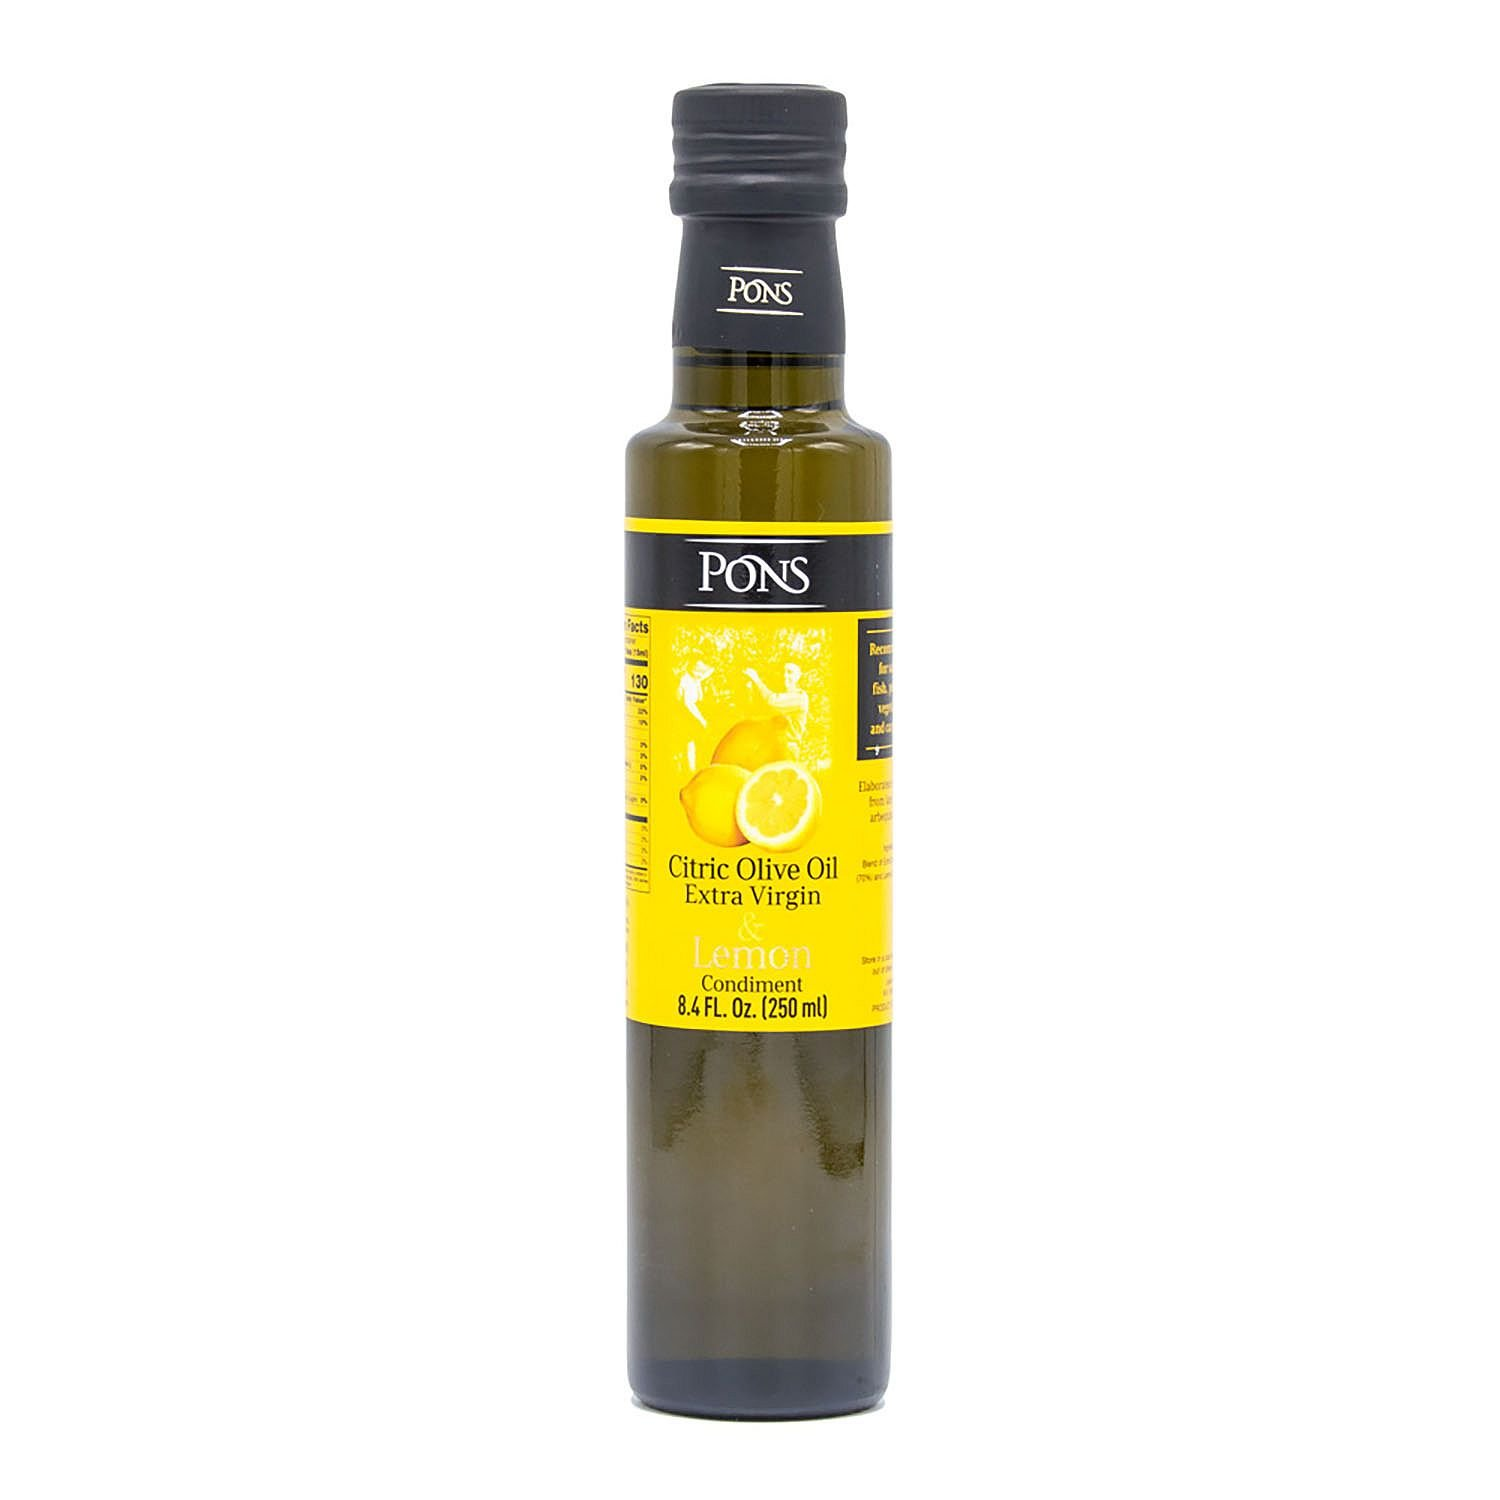 Amazon.com : PONS Olive Oil Variety Pack with Garlic, Lemon and ...